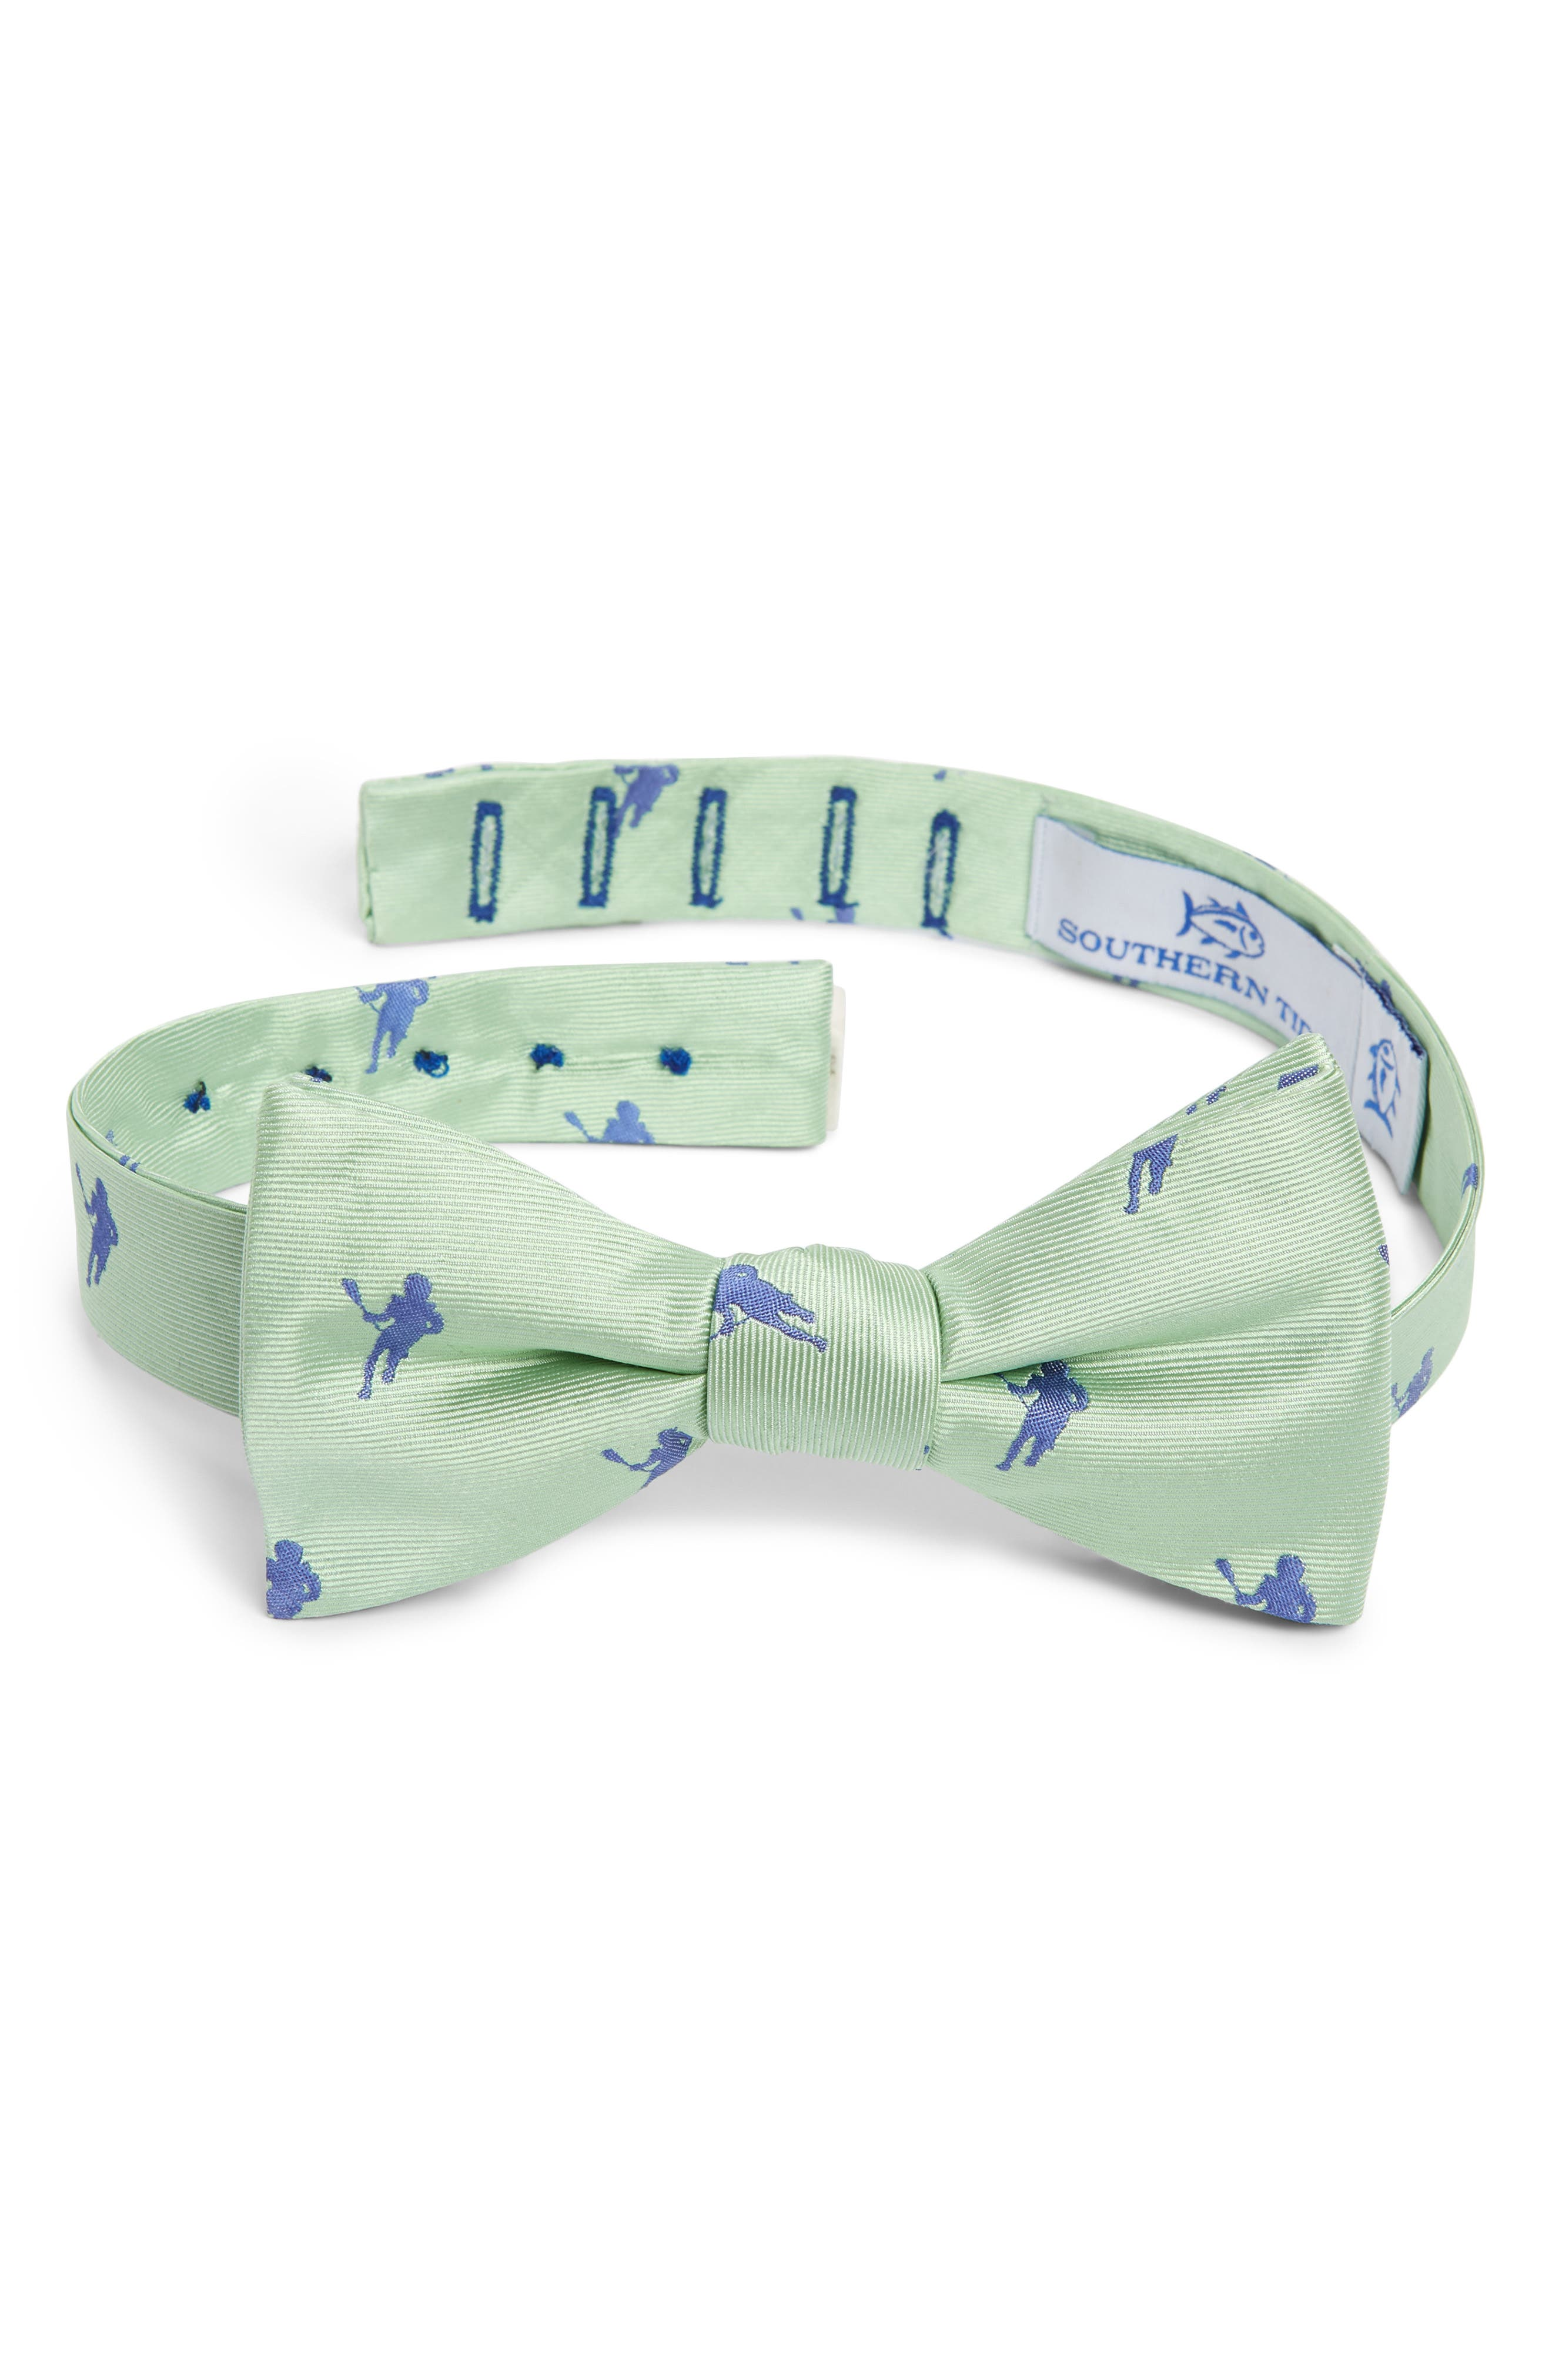 Littleton Lacrosse Silk Bow Tie,                             Main thumbnail 1, color,                             GREEN